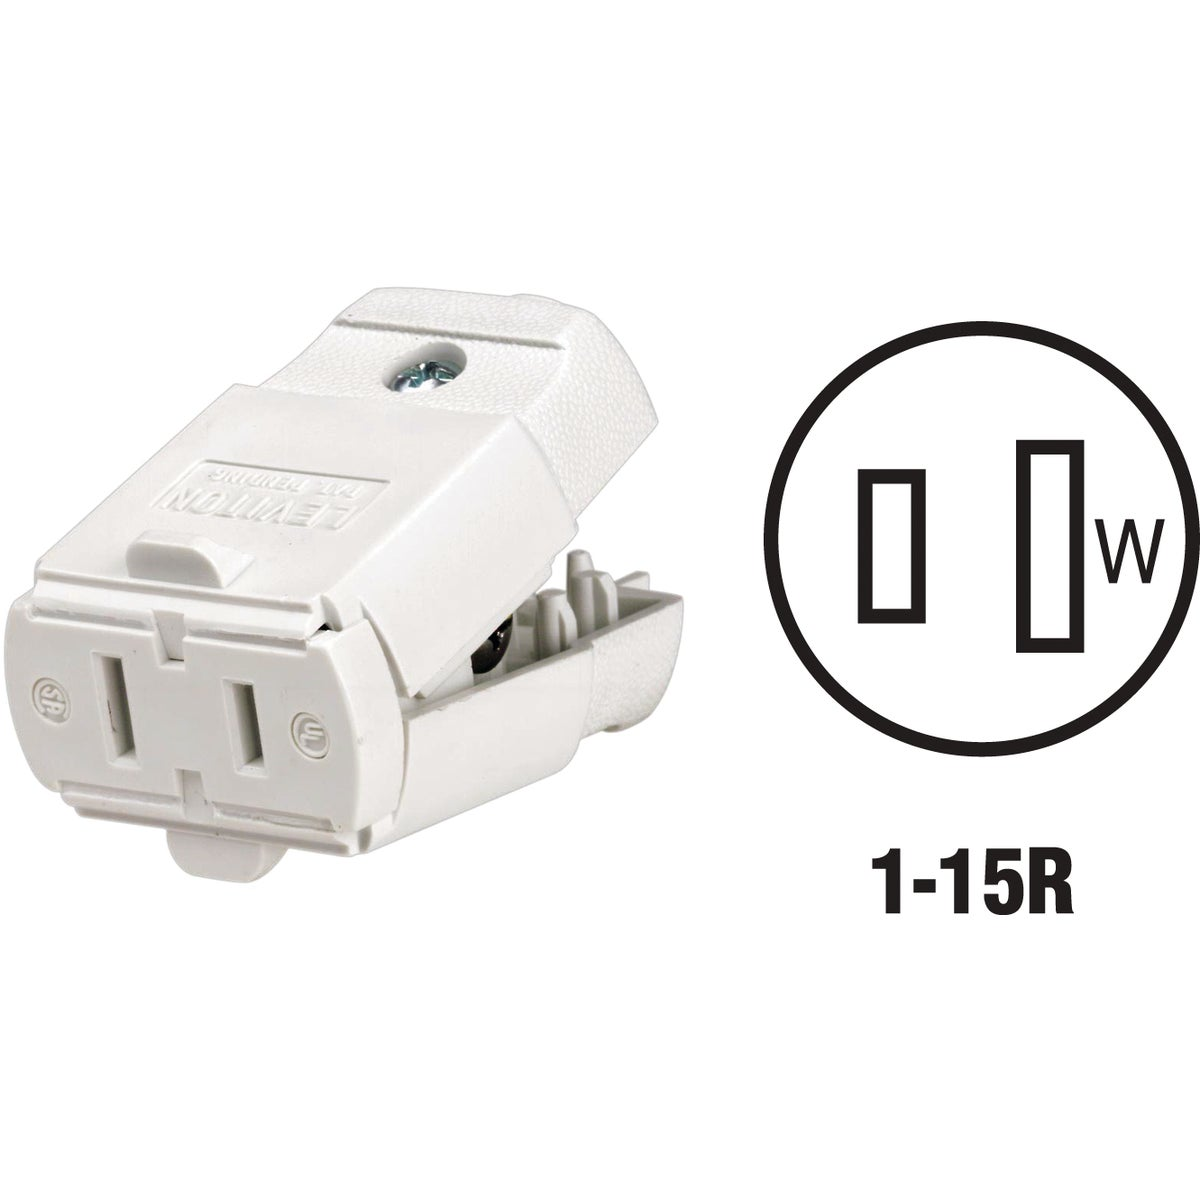 WHT CORD CONNECTOR - 016102WP by Leviton Mfg Co